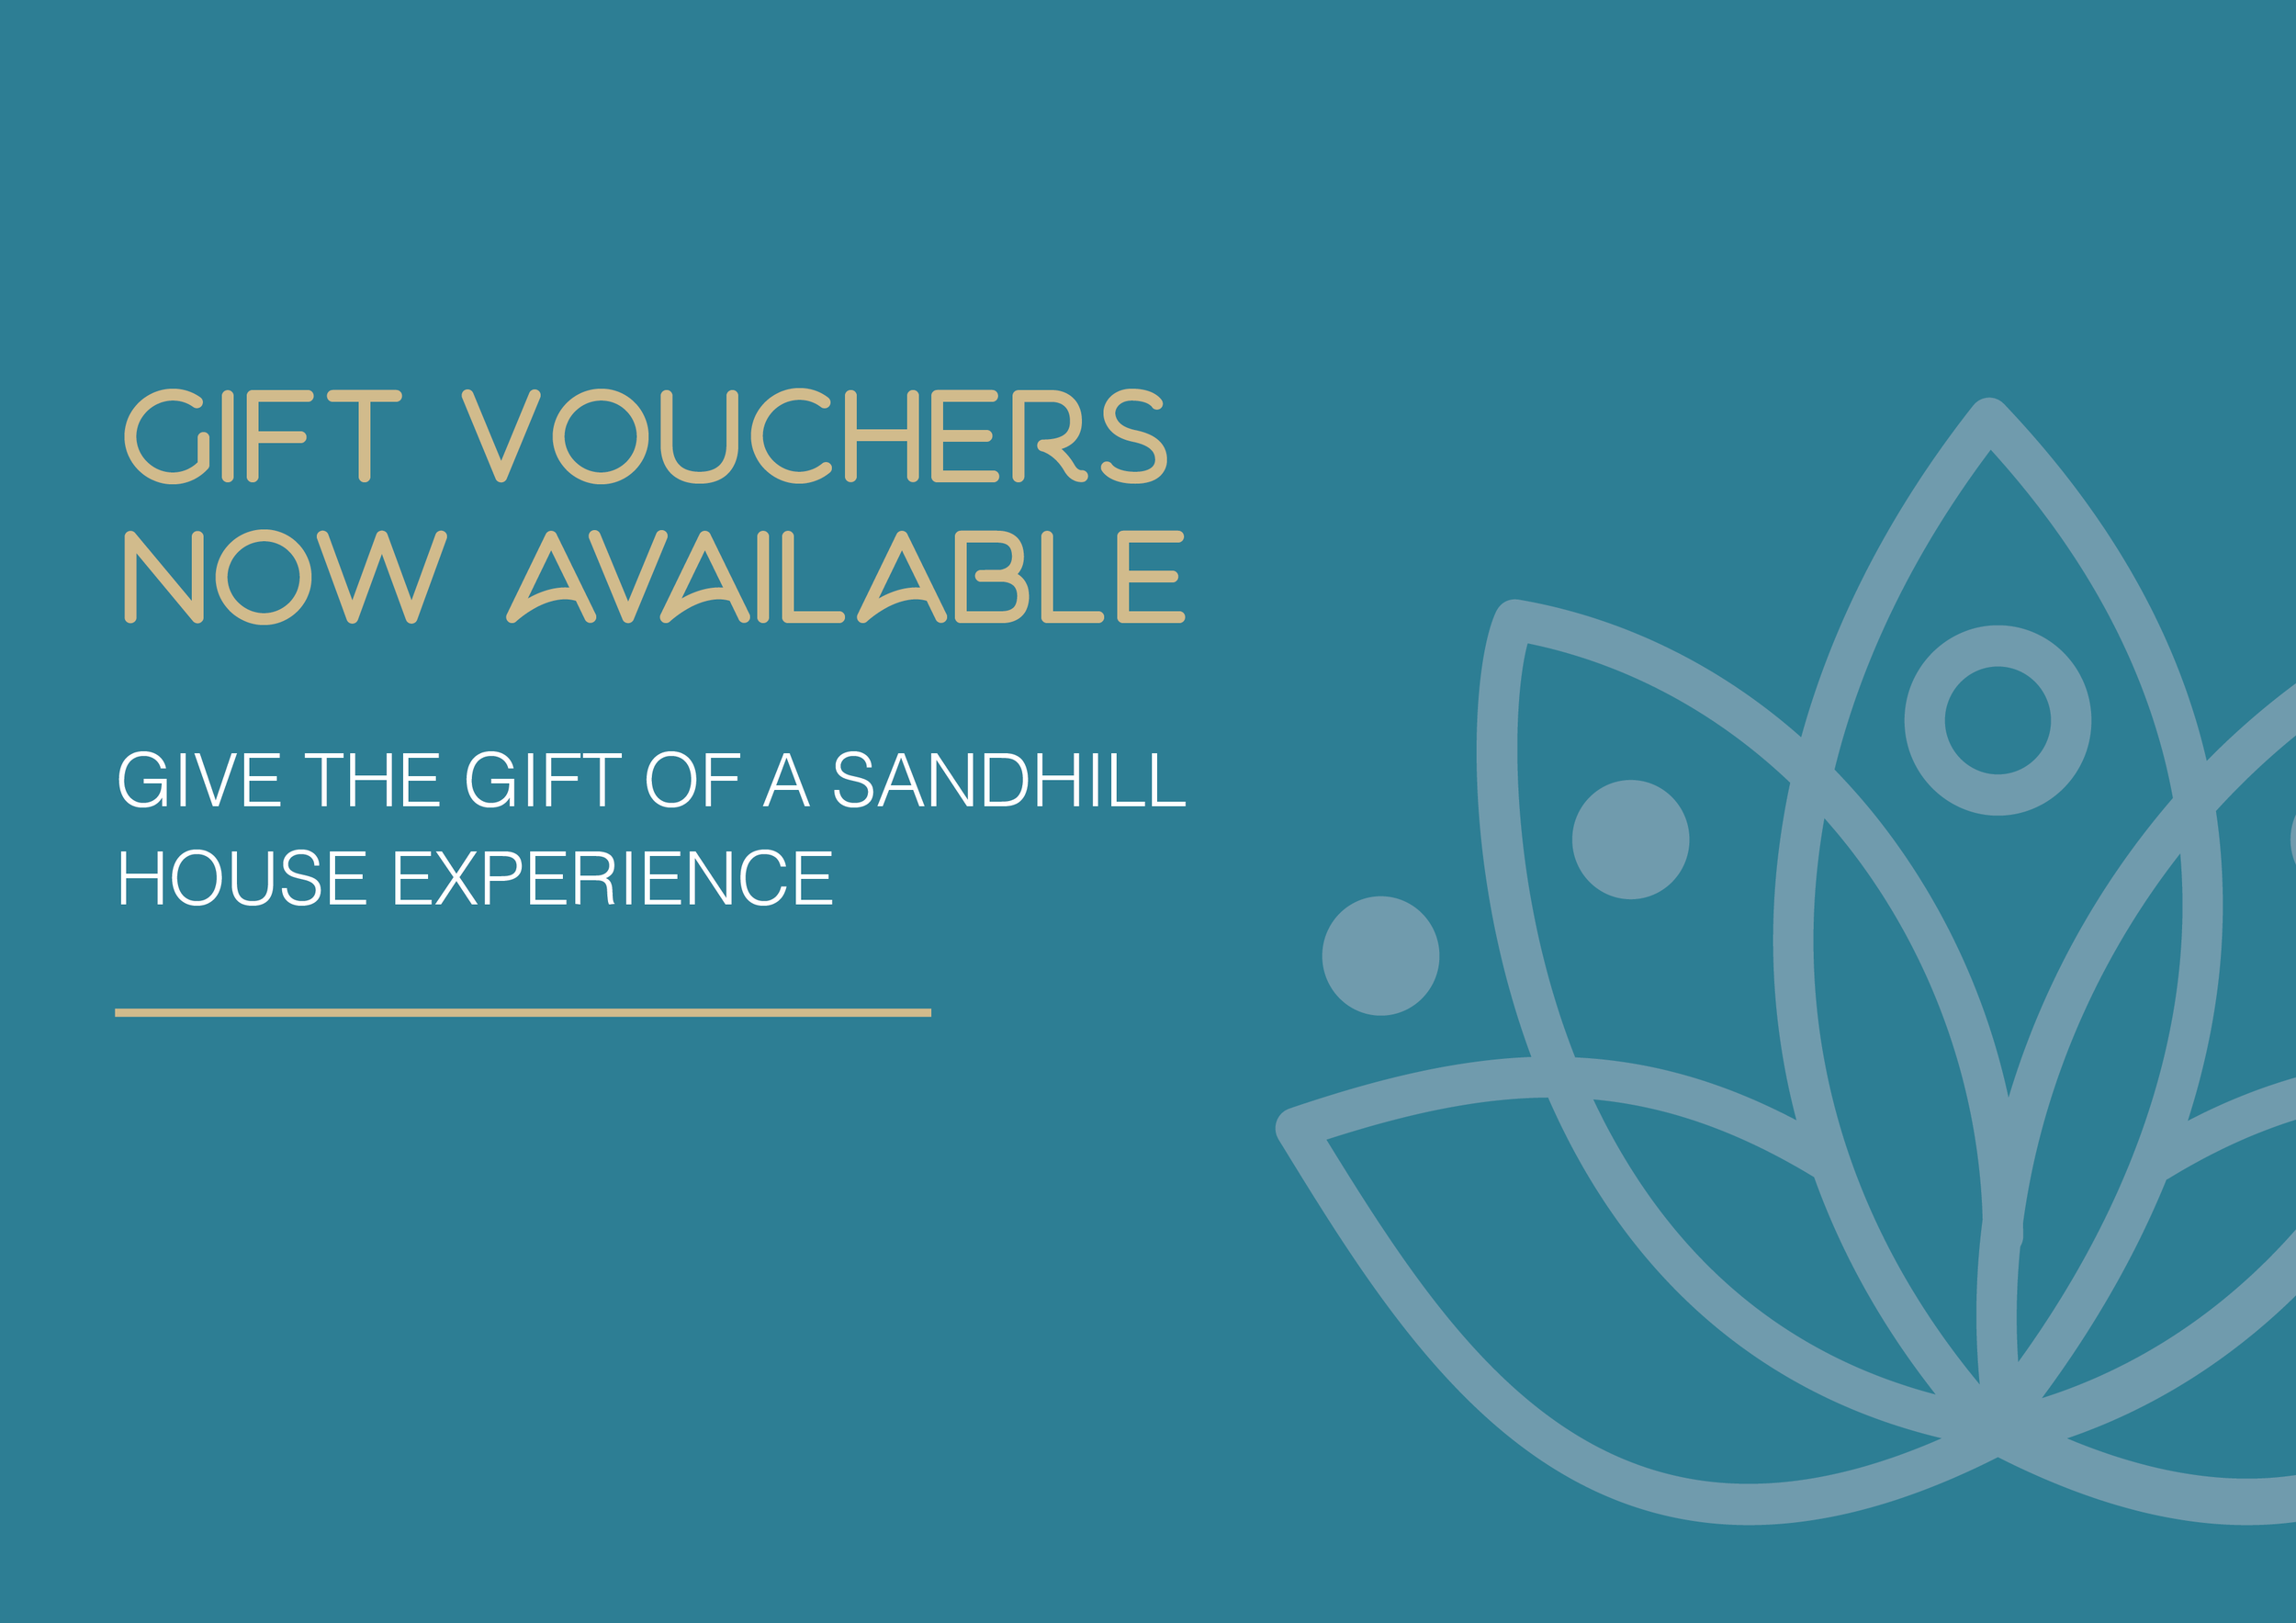 Sandhill House Gift Voucher.png